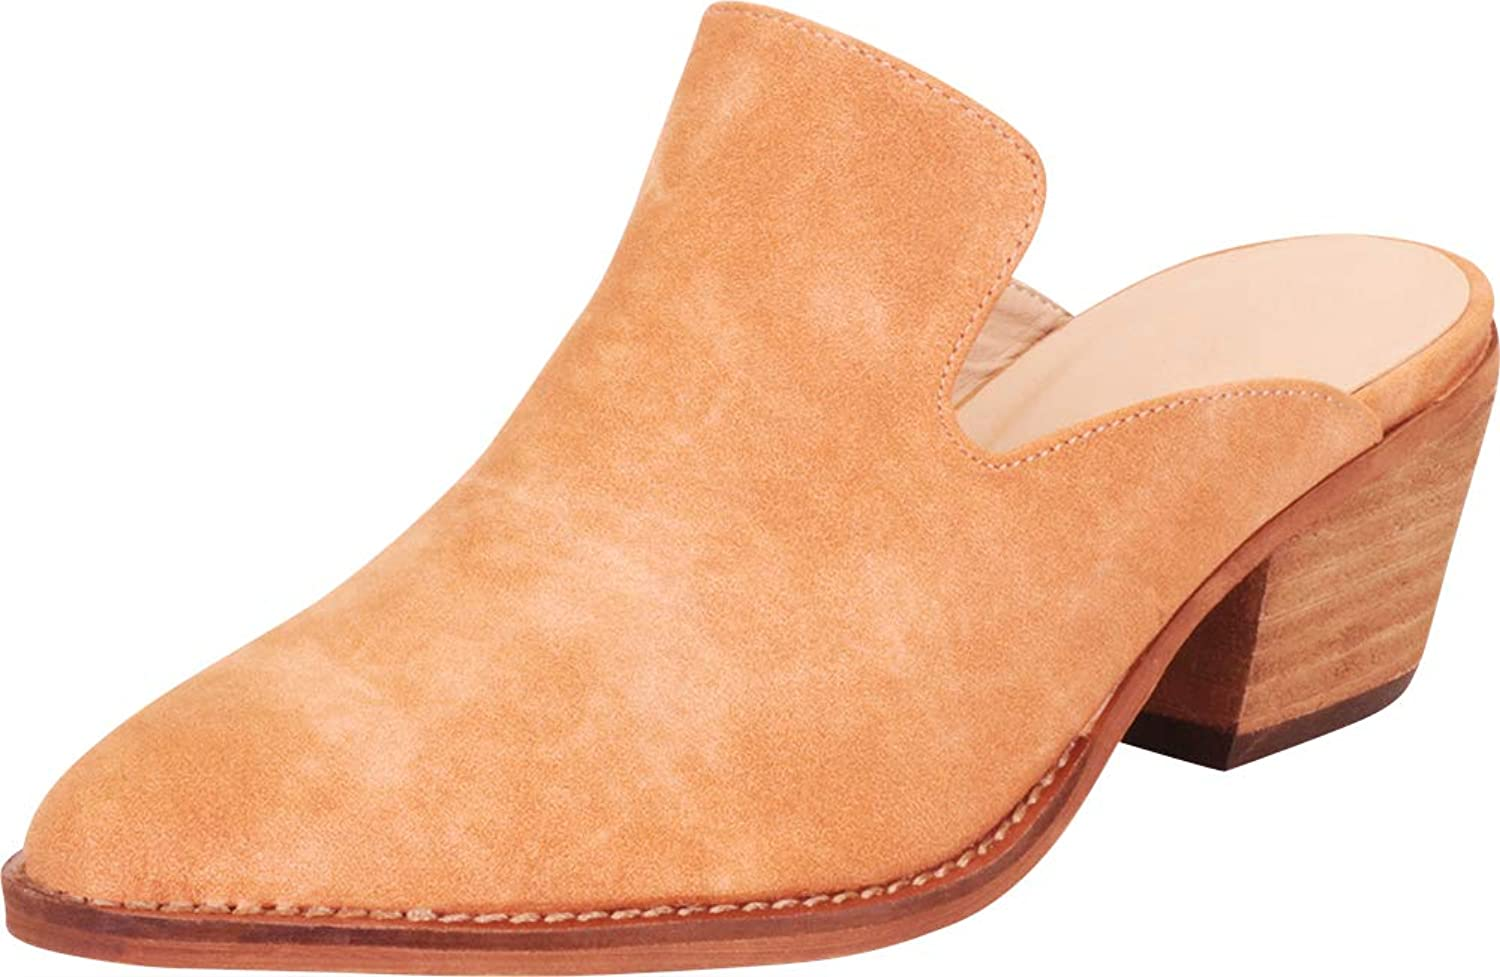 Cambridge Select Women's Pointed Toe Slip-On Chunky Stacked Block Mid Heel Mule